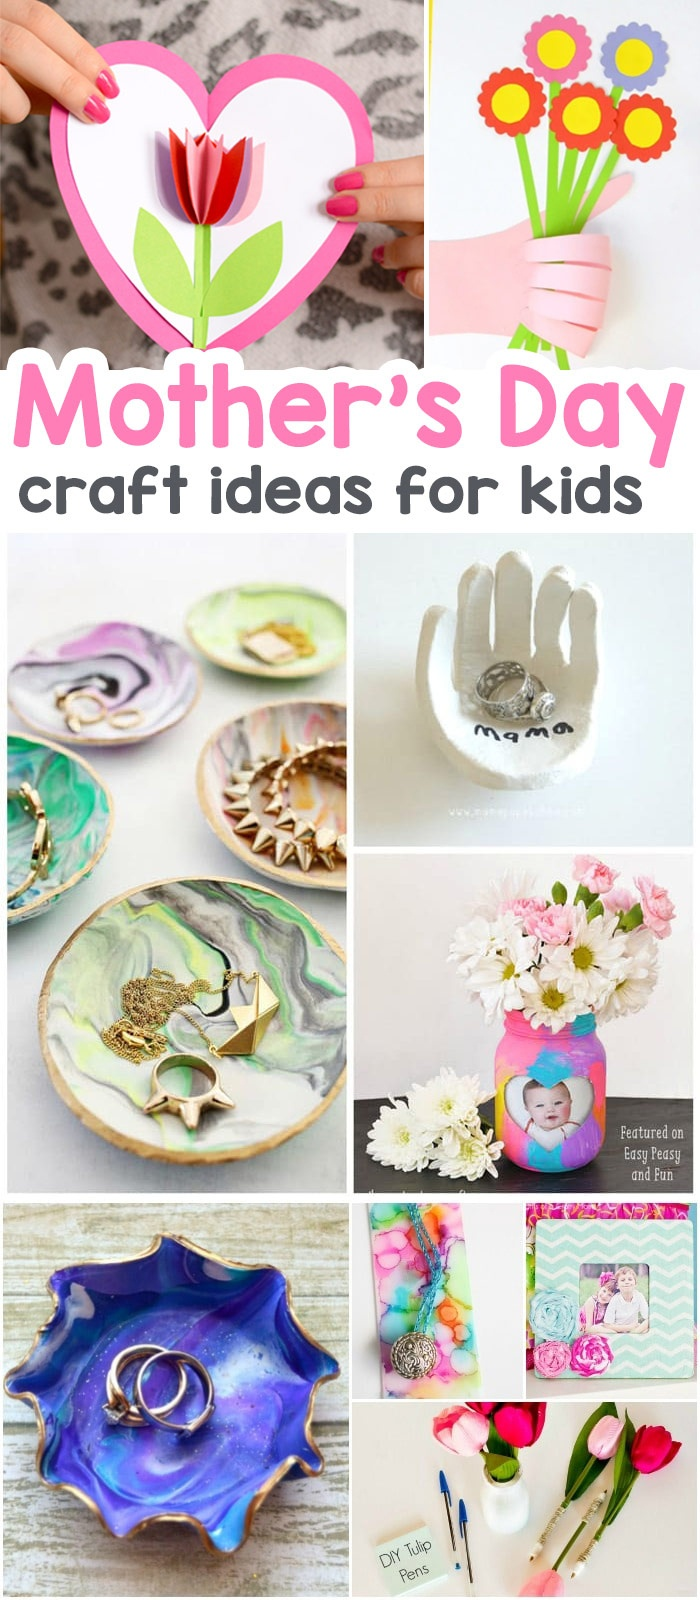 25+ Mothers Day Crafts For Kids - Most Wonderful Cards, Keepsakes - Free Printable Mothers Day Crafts